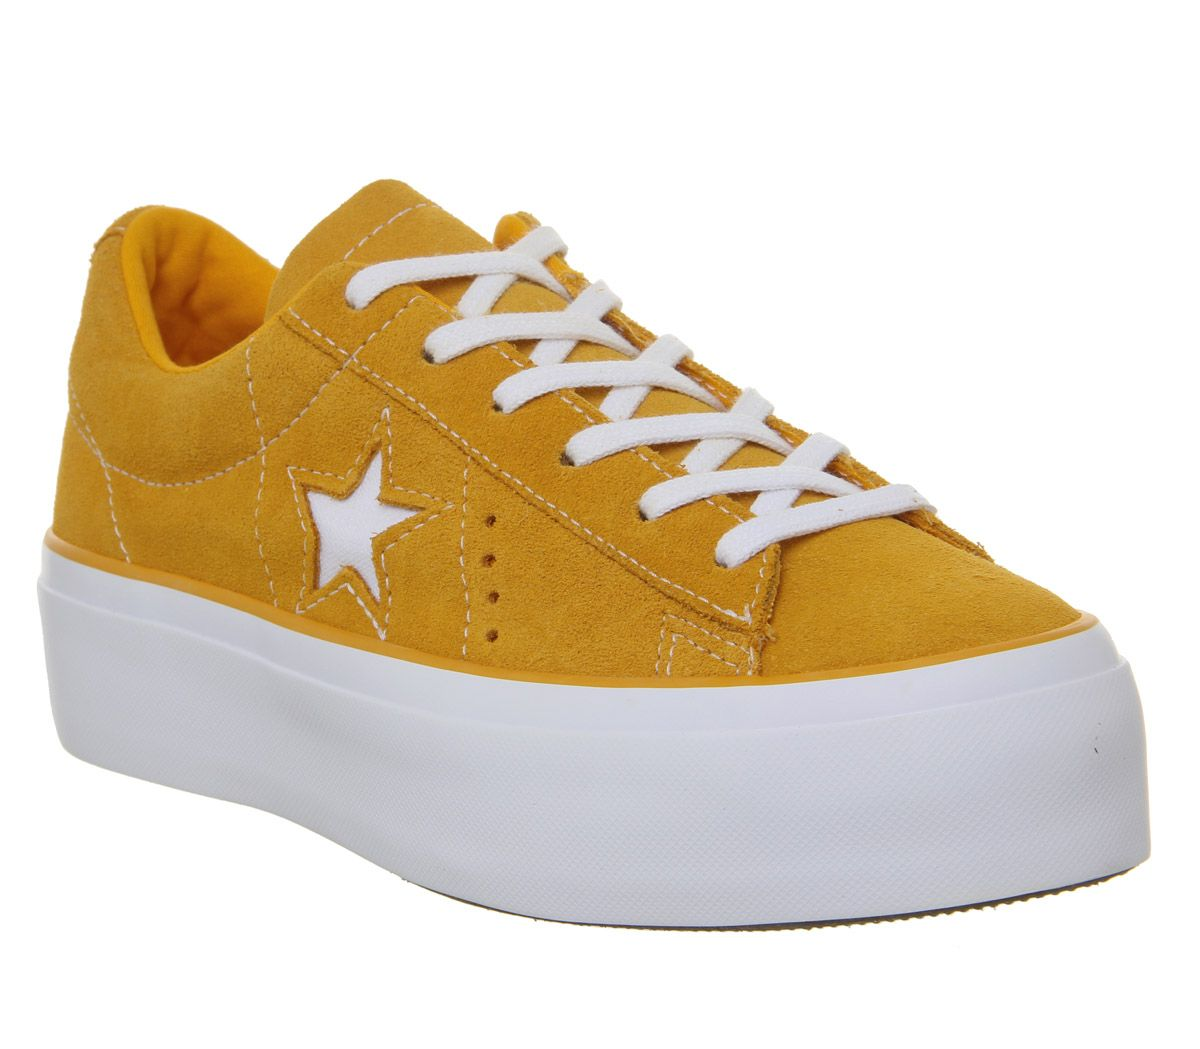 Détails sur Chaussures Femme Converse One Star Plate forme Baskets Field Orange Blanc Baskets Chaussures afficher le titre d'origine